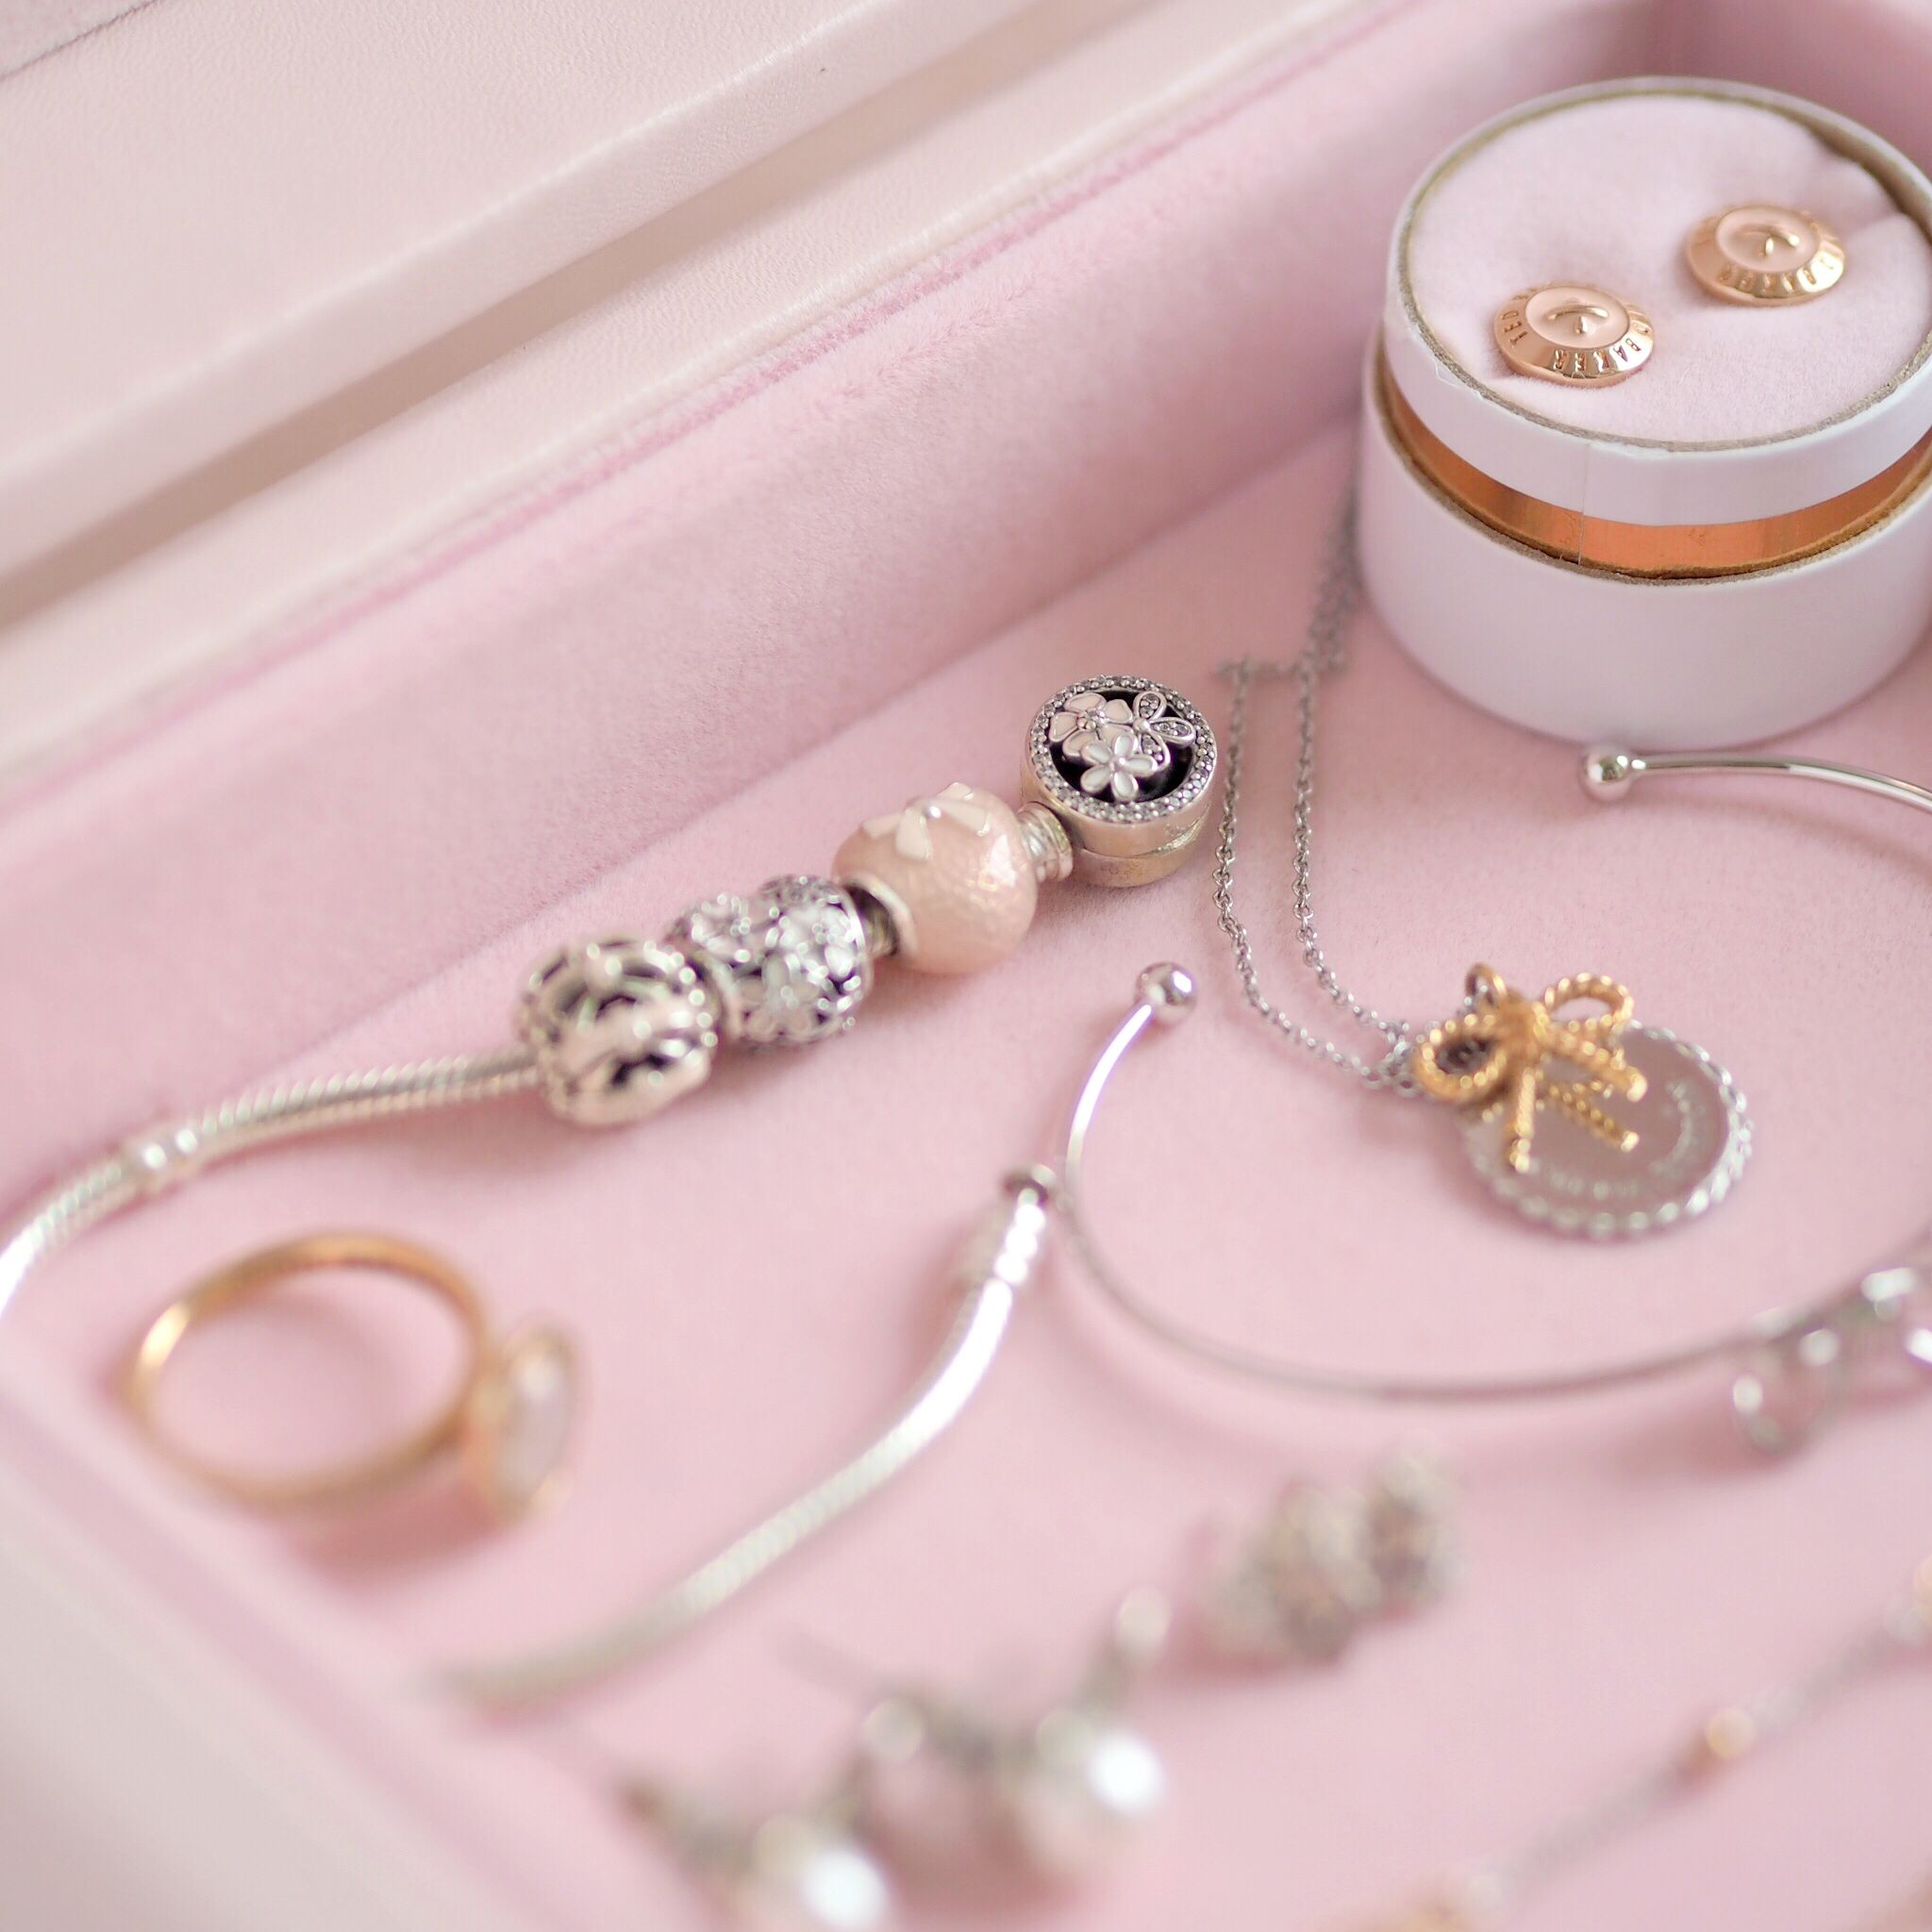 Inside My Jewellery Box: My Favourite Dainty Pieces, Pandora Poetic Blooms Bracelet | Love Catherine